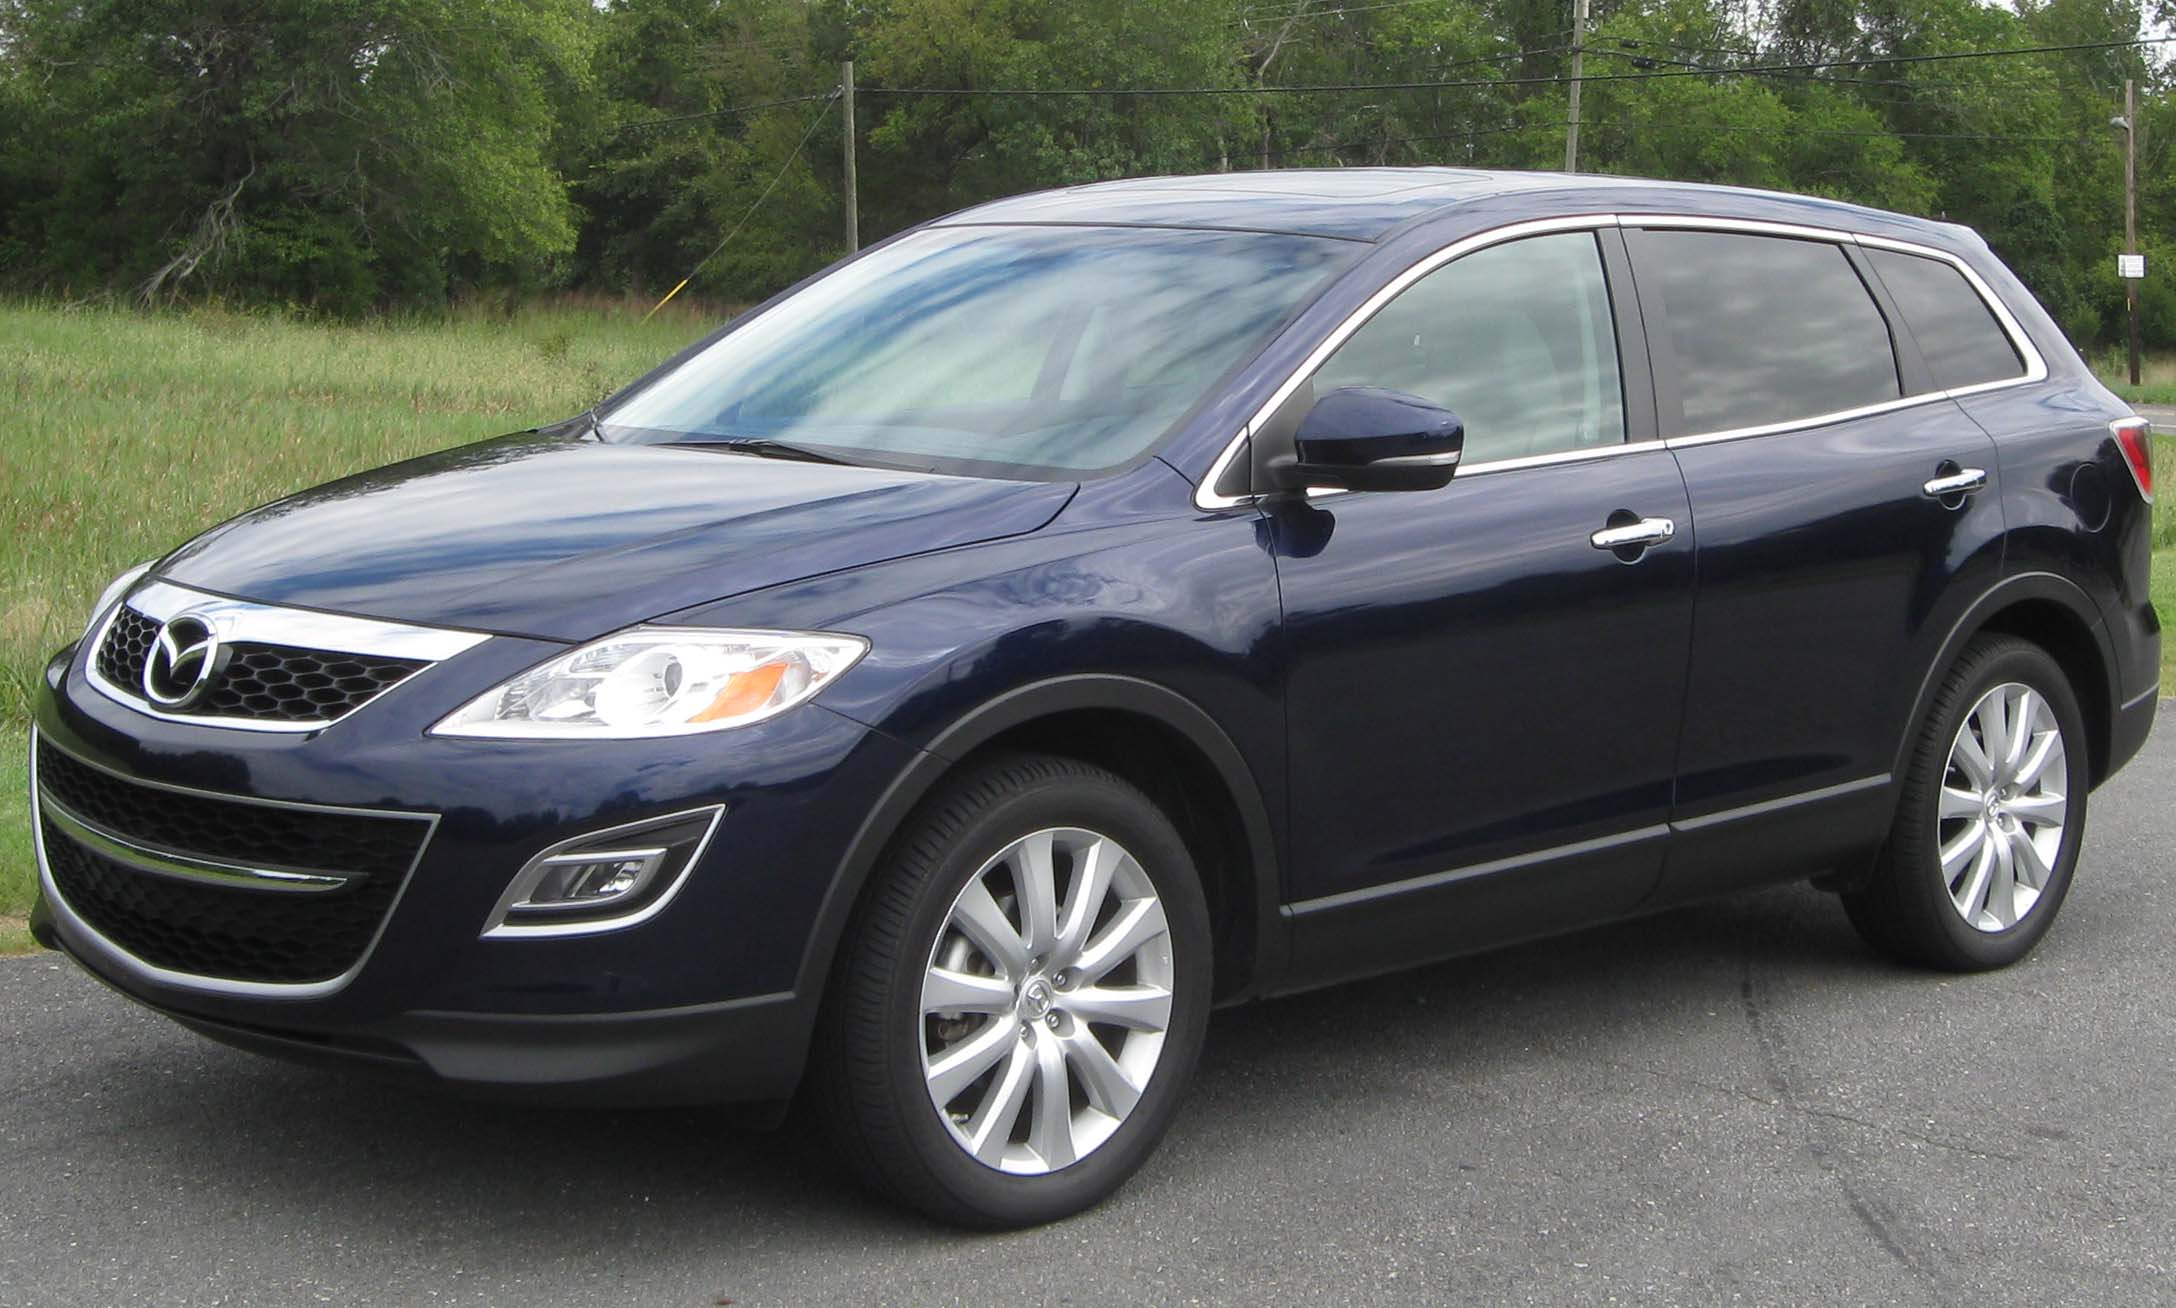 2010 mazda cx 9 photos informations articles. Black Bedroom Furniture Sets. Home Design Ideas